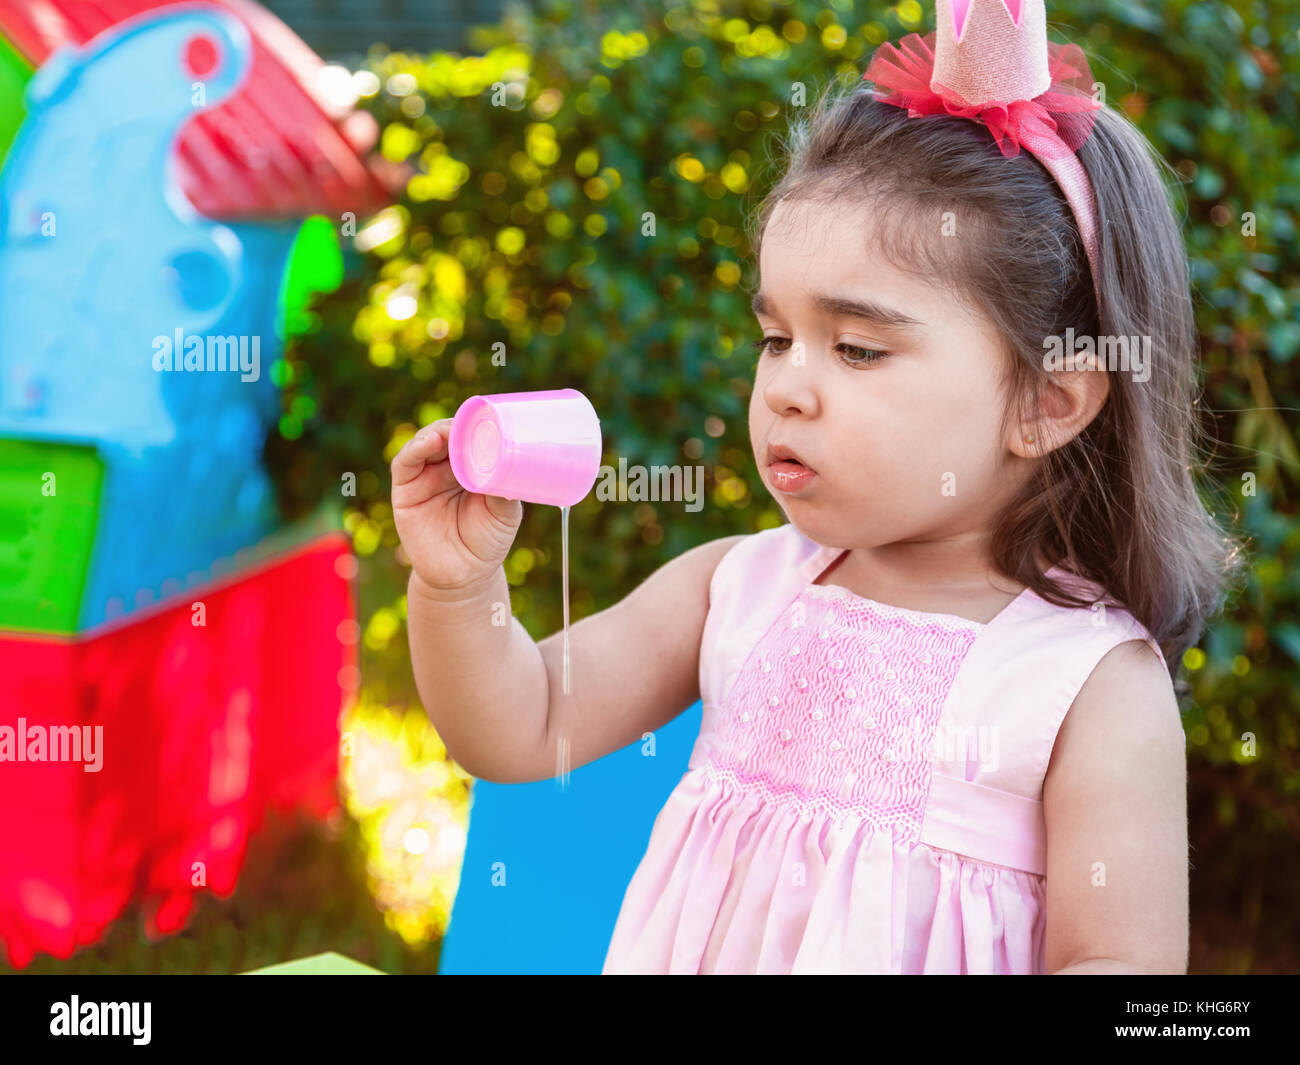 Baby toddler girl playing in outdoor experimenting and exploring by making a mess by spilling juice from cup. Pink - Stock Image